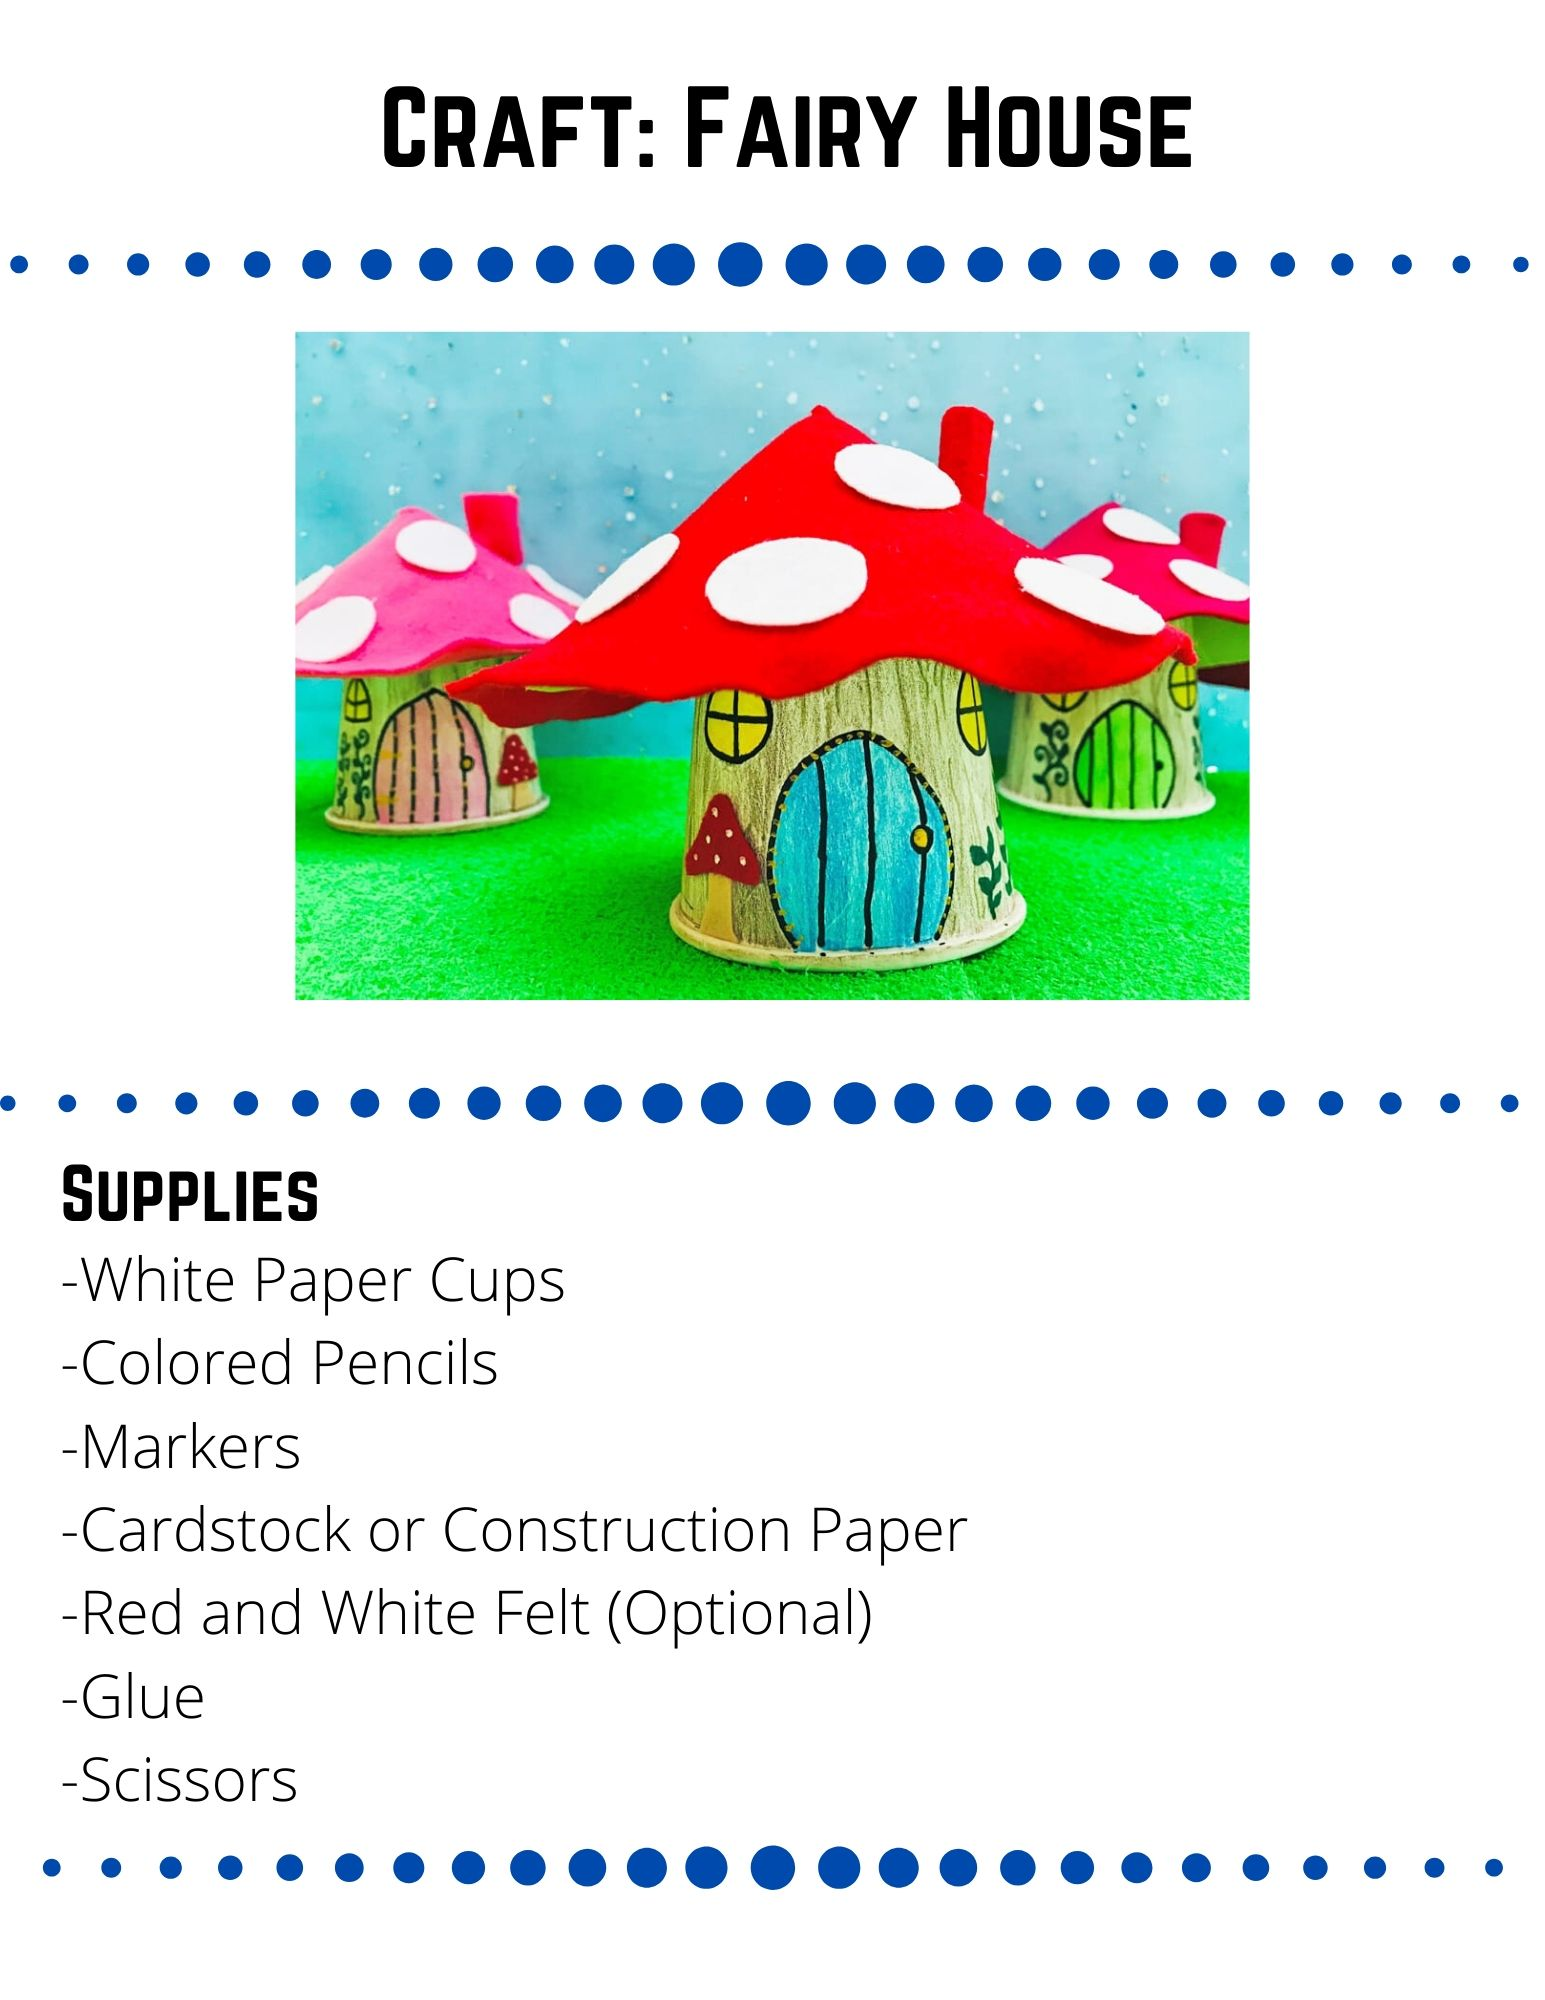 Craft: Fairy House: -White Paper Cups -Colored Pencils -Markers -Cardstock or Construction Paper -Red and White Felt (Optional) -Glue -Scissors. Use a black marker to draw a door and windows on your paper cup. Add more color and details to your cup with colored pencils-Use brown to create a wood feel or green to make it mossy. Use a small plate to trace a circle on your cardstock or construction paper. Cut out the circle and then cut out a line to the center of the circle. Roll the two sides of your circles inward to create a cone. Staple or tape the edges in place. If you don't have felt, color and decorate the cardstock to look like a toadstool.  If you do have felt, lay your cone onto your red felt and cut out a circle slightly larger than the cone. Cut a line to the center of your felt.  Then glue the felt to the cardstock cone.  Cut the edges of your felt in a wavy line to look like a toadstool. Stick your roof to your paper cup with tape or glue. Add finishing touches like a chimney or vines. Optional: To make your house light up put a battery operated tea light under your cup.